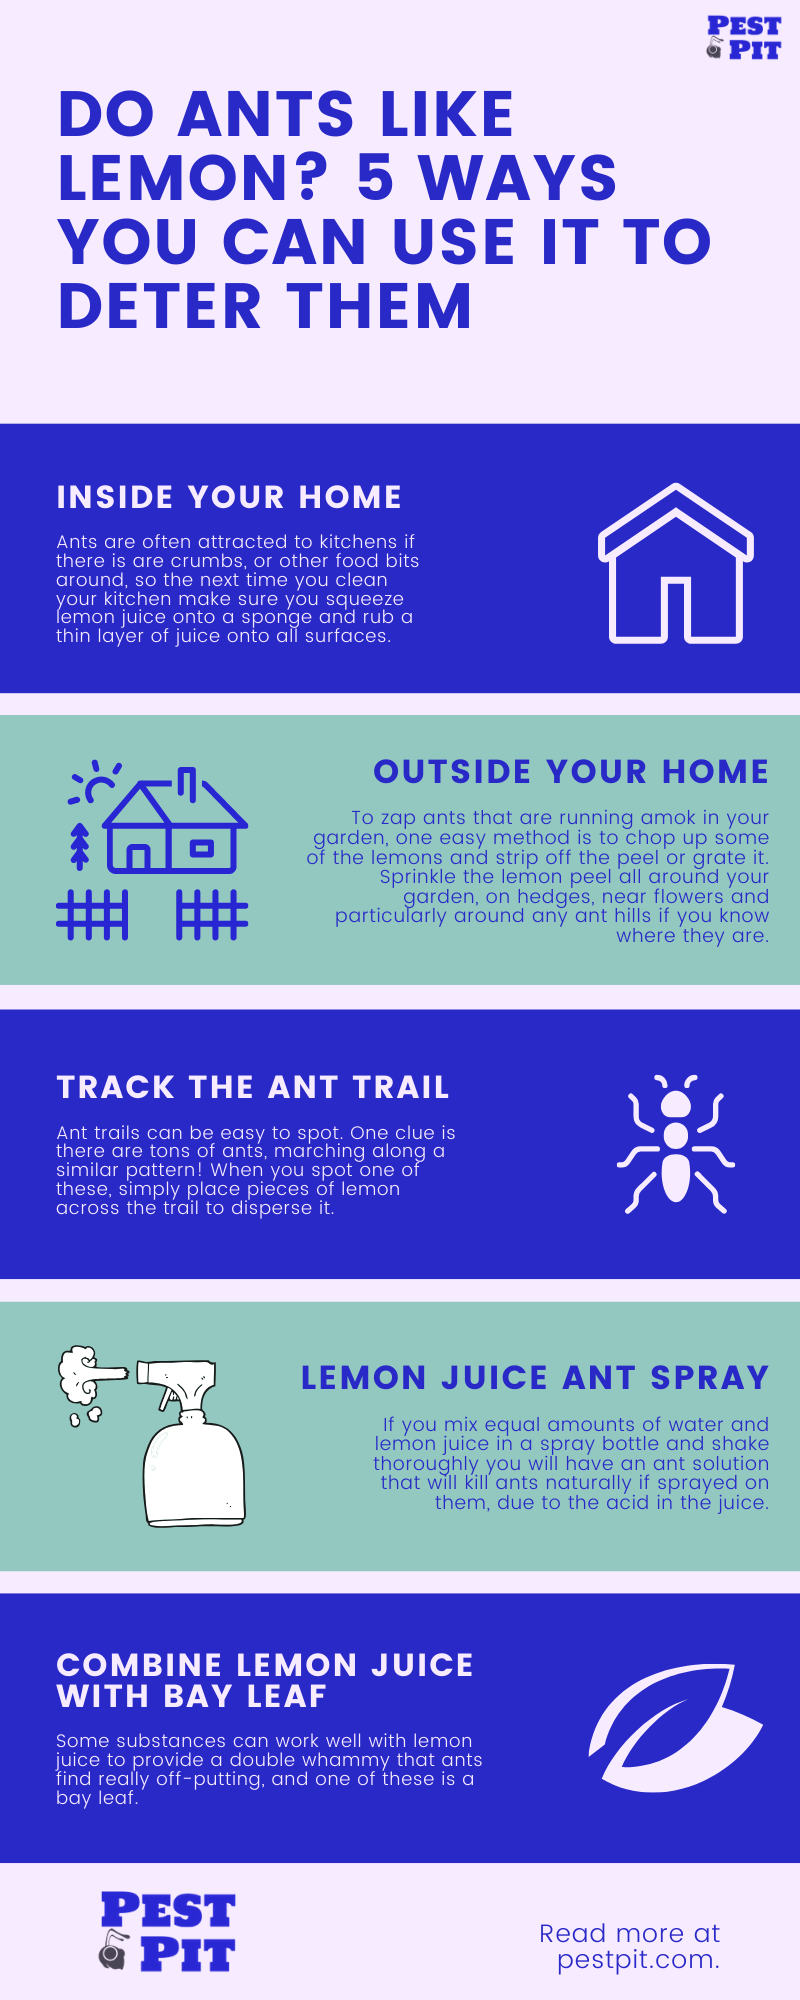 Do Ants Like Lemon_ 5 Ways You Can Use It To Deter Them